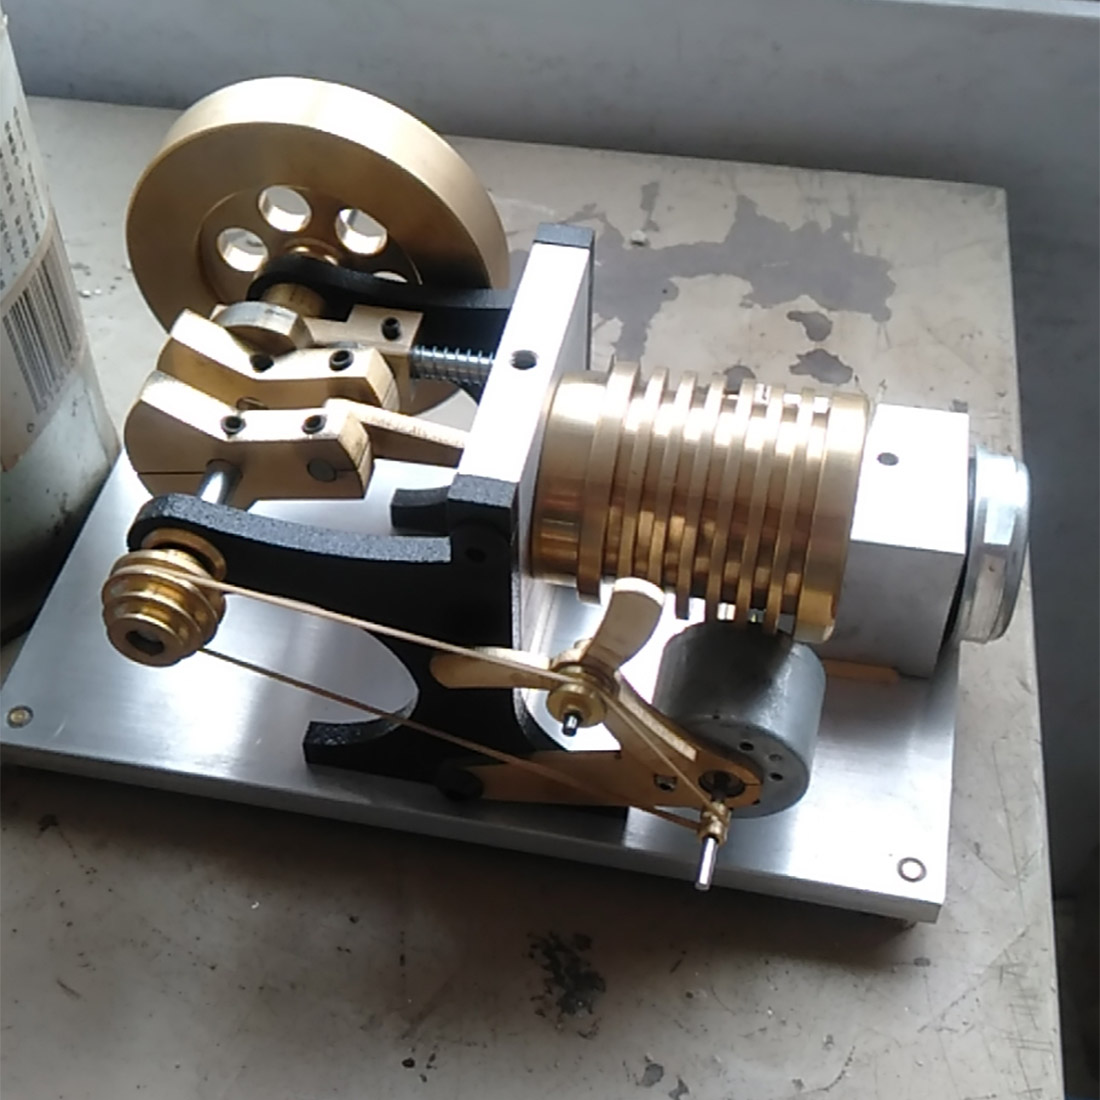 2020 New Hot Suction Fire Type Single-Cylinder All-Metal Stirling Engine Model - Modified Bracket Version